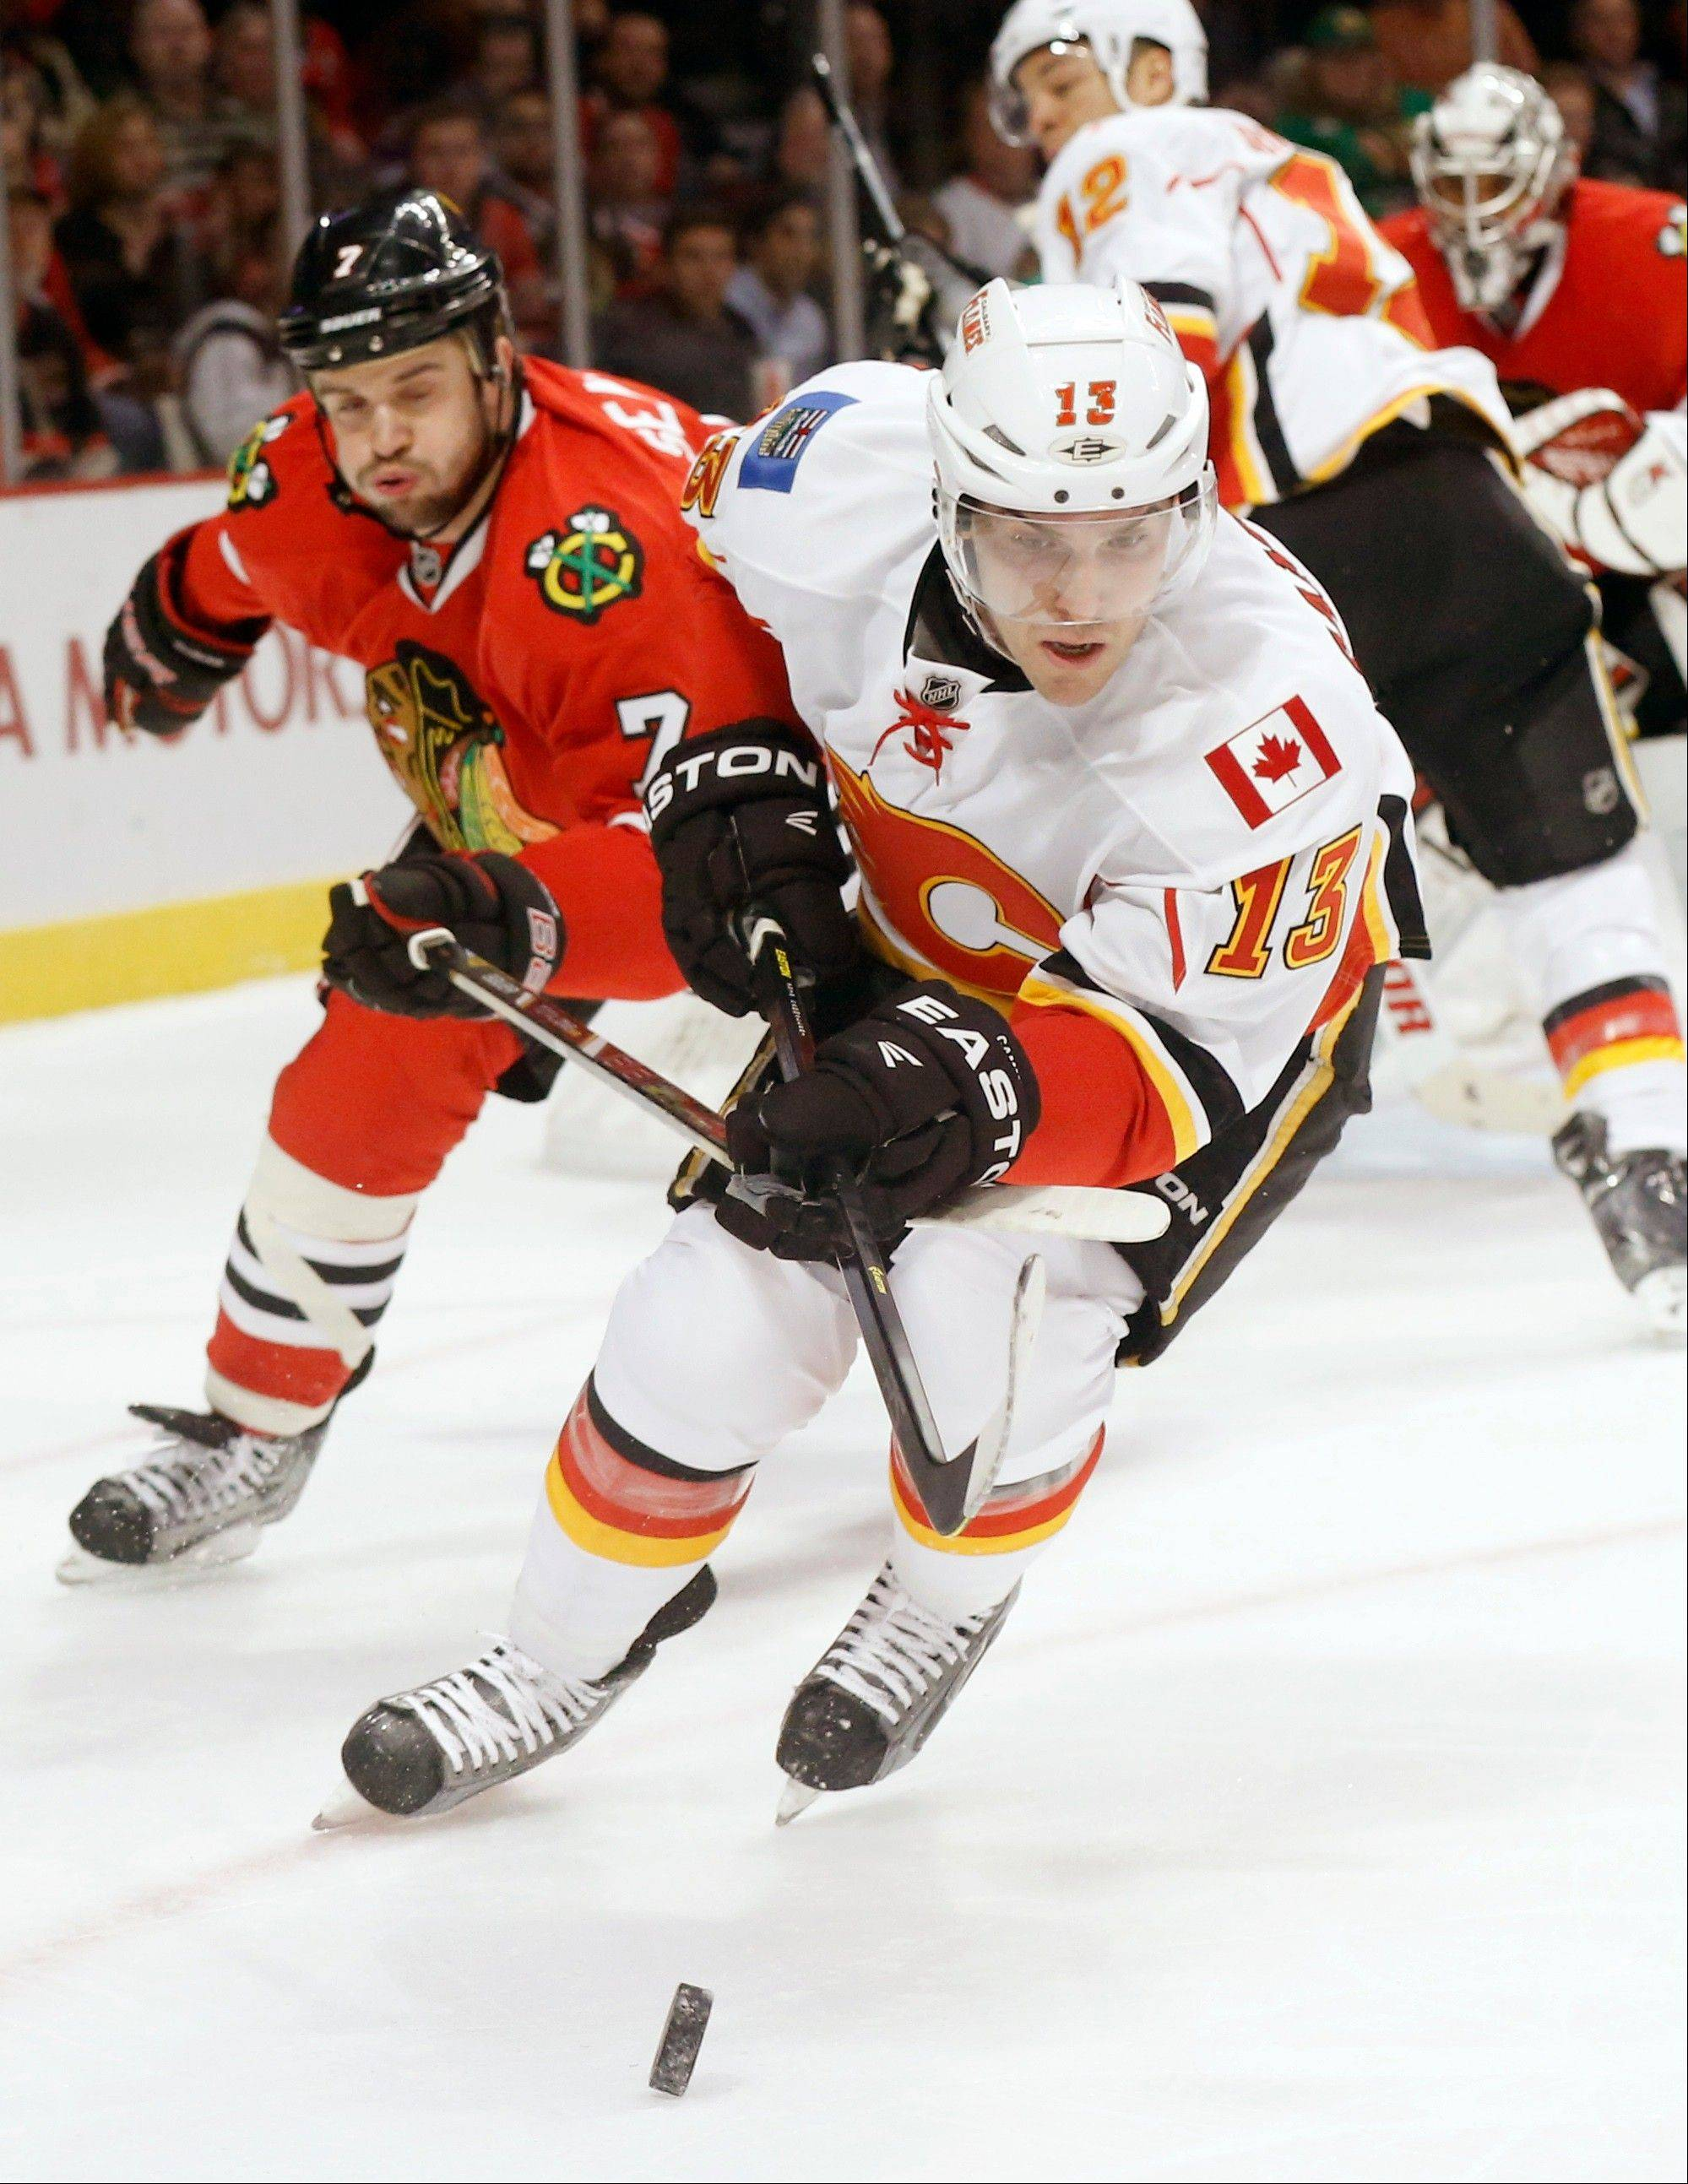 Calgary Flames left wing Mike Cammalleri (13) and Chicago Blackhawks defenseman Brent Seabrook (7) chase after a loose puck during the first period of an NHL hockey game Tuesday, March 26, 2013 in Chicago.